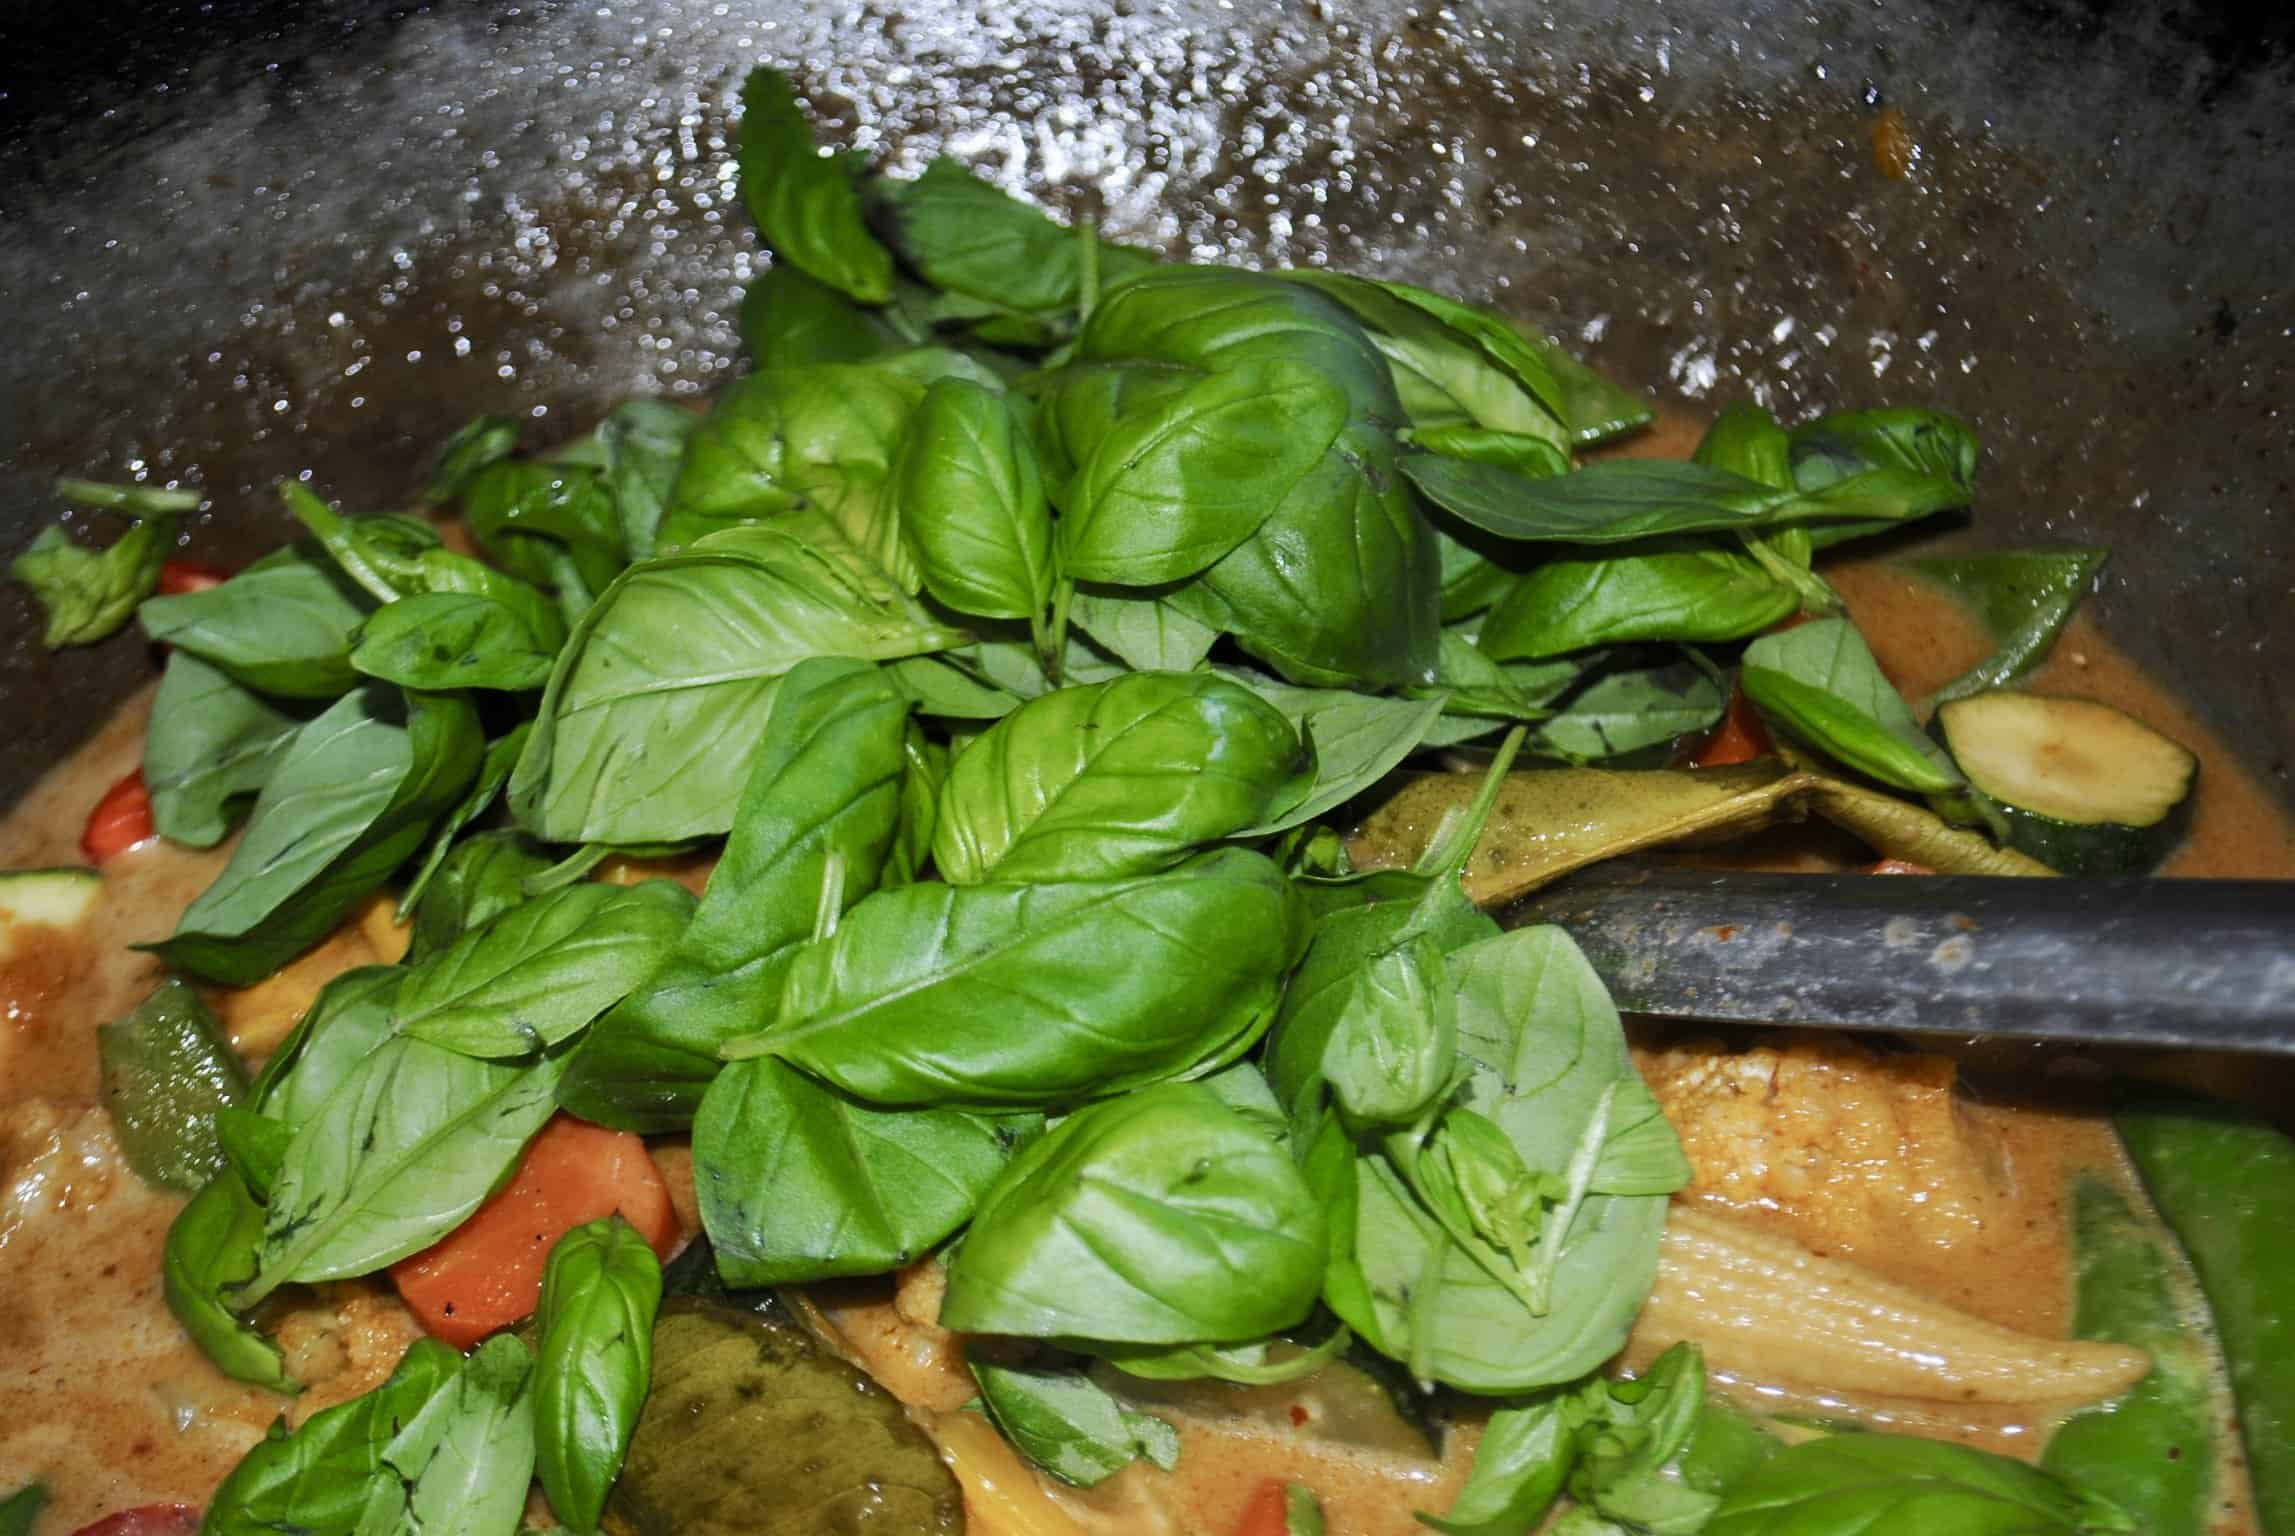 Thai vegetable red curry with basil leaves added at the end of cooking